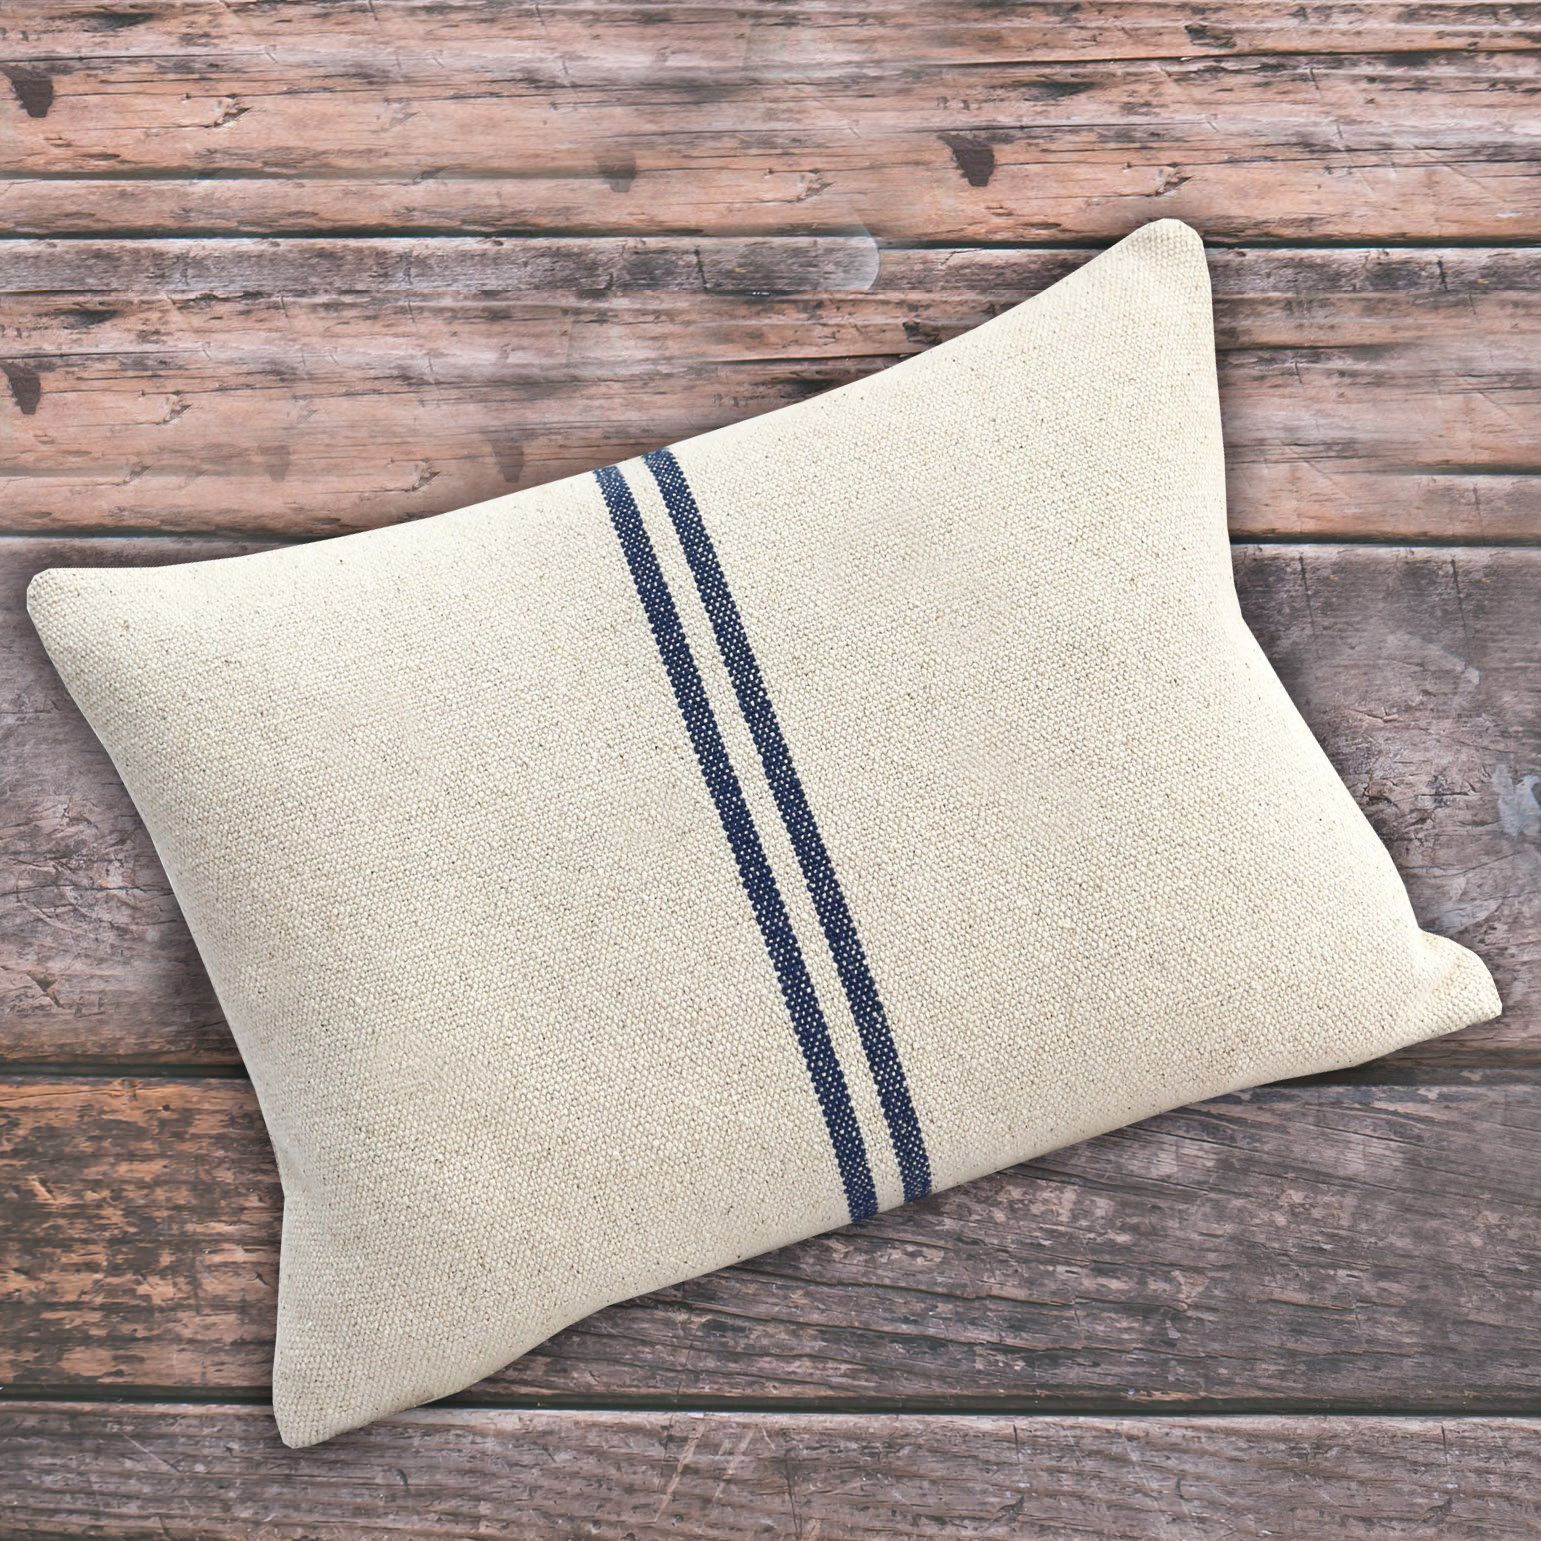 handmade pillow design from Thailand